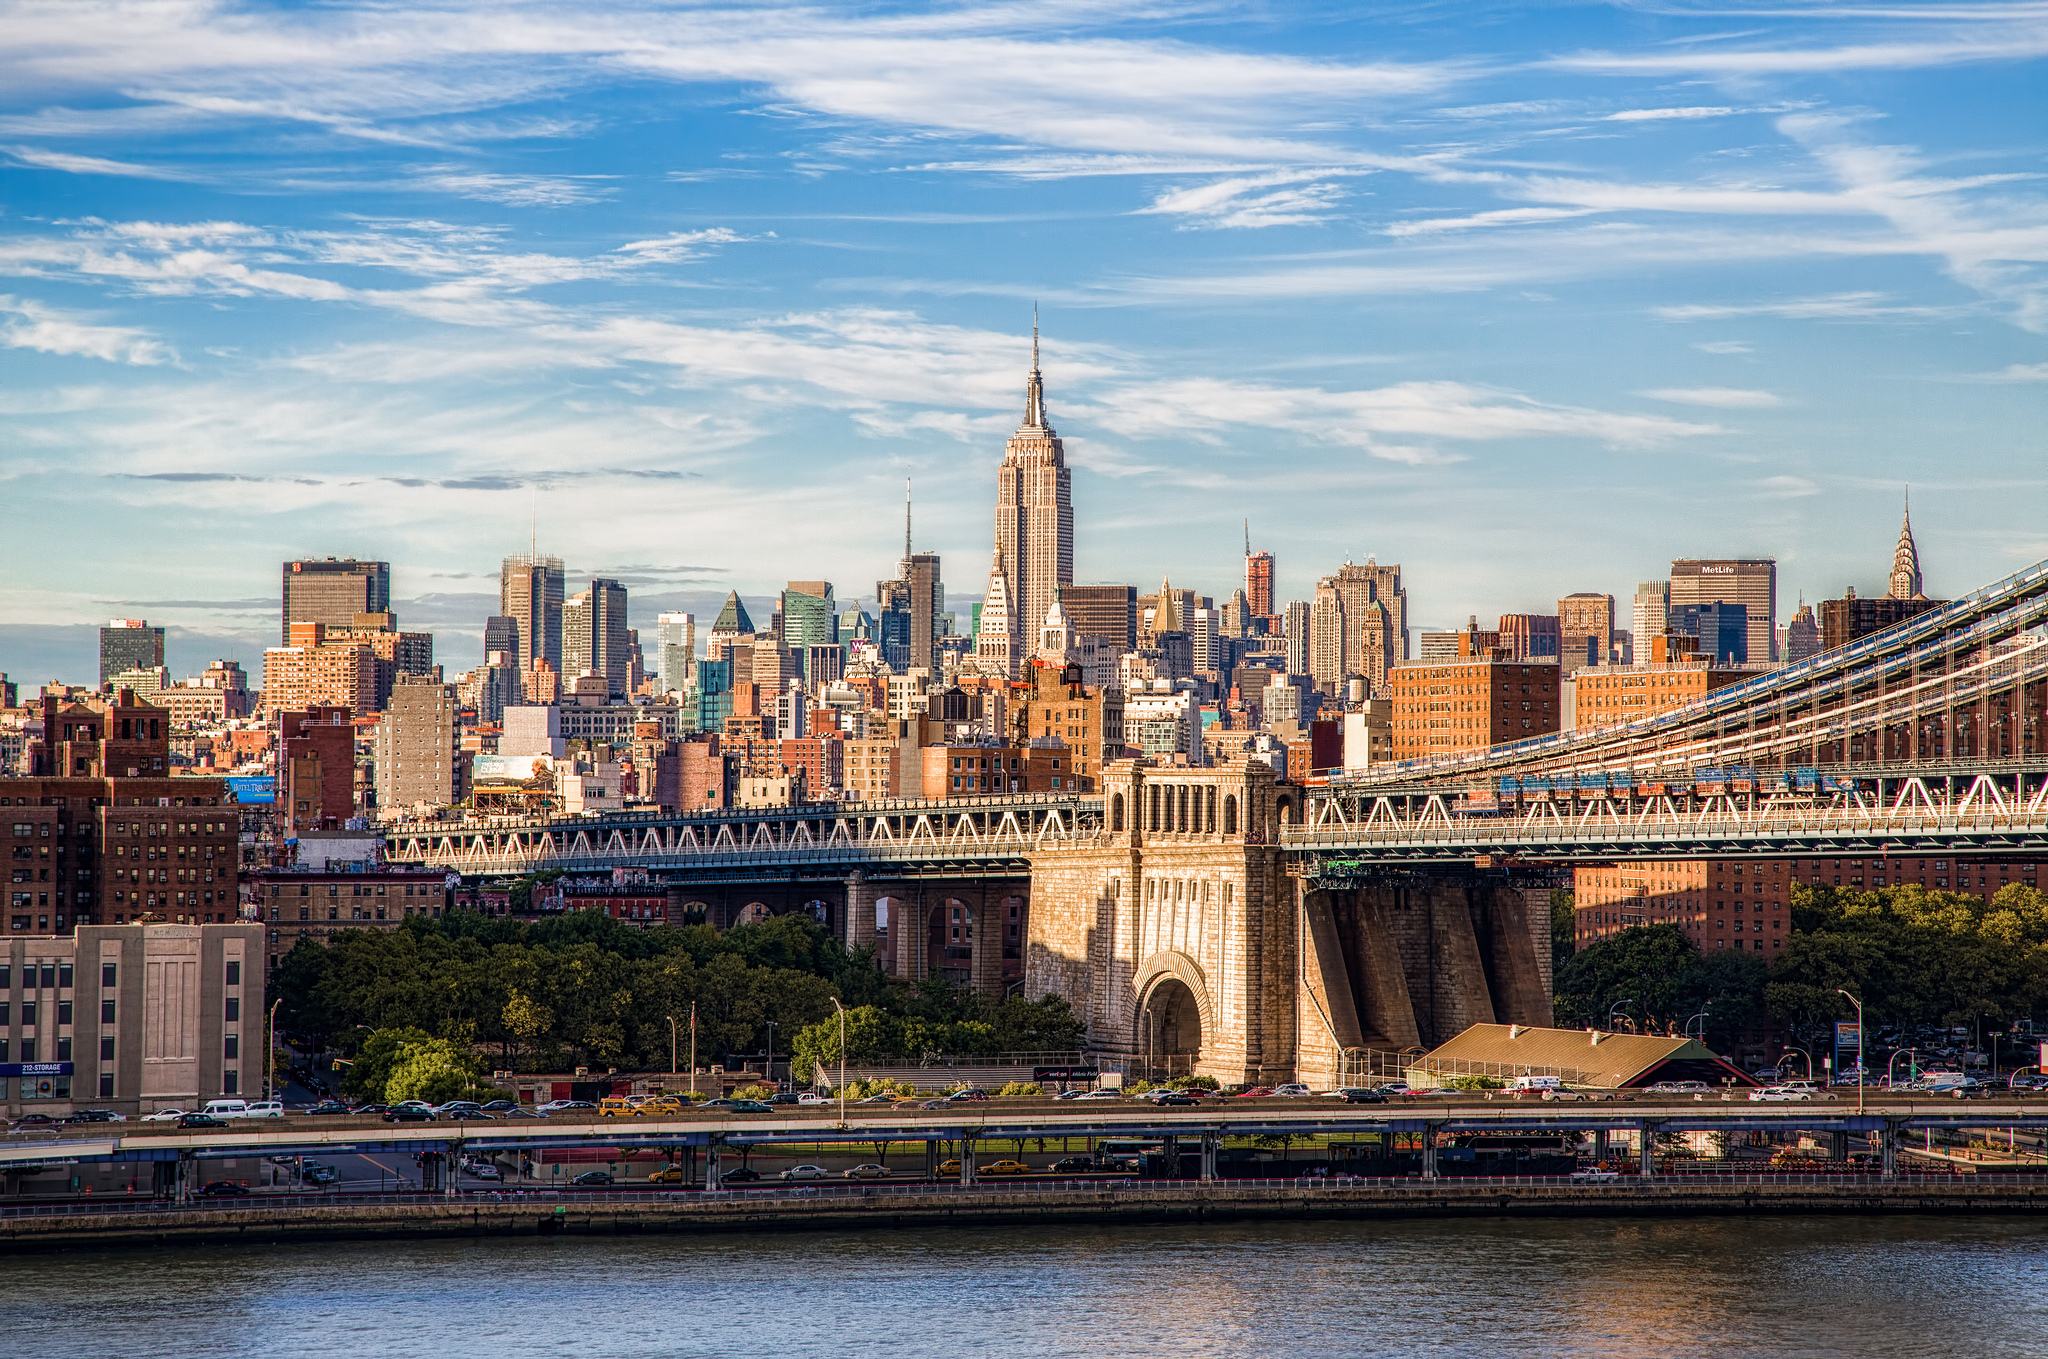 101 things to do in New York: By area